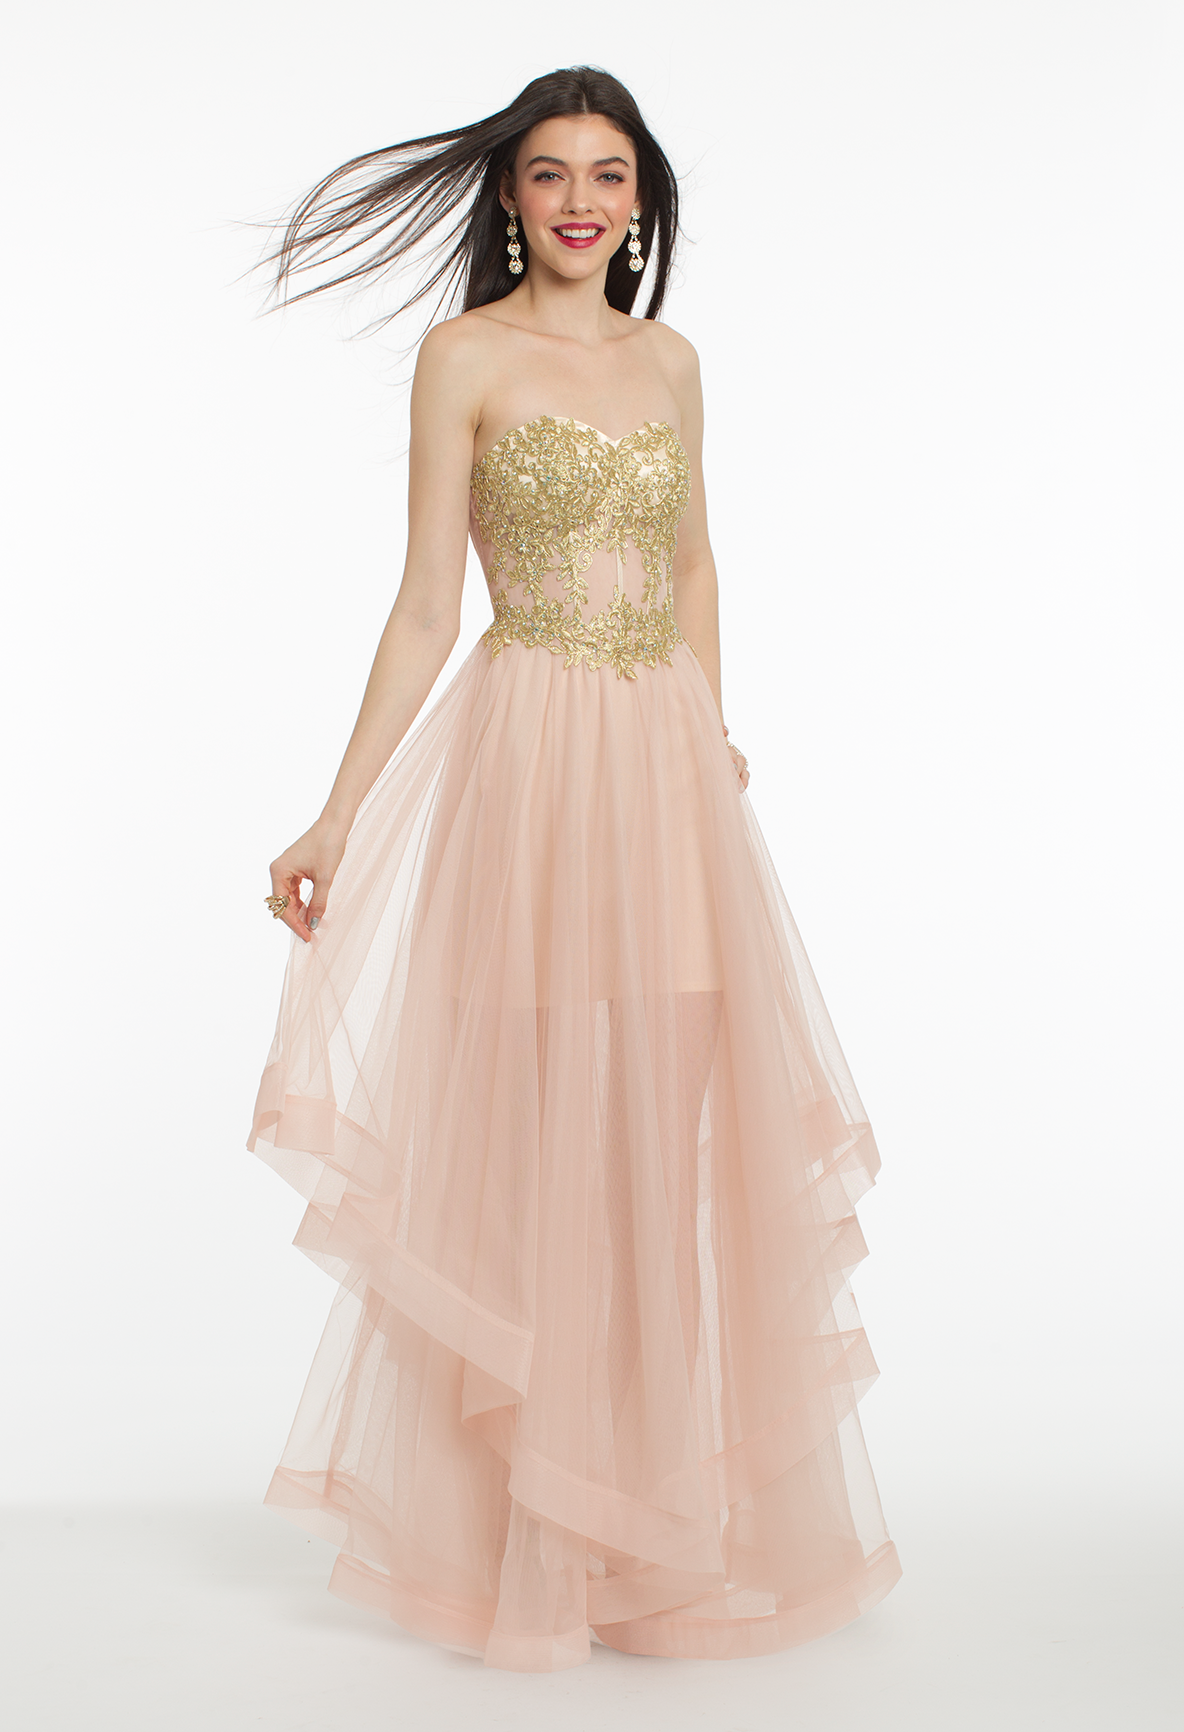 This ethereal evening gown is an absolute dream with its strapless